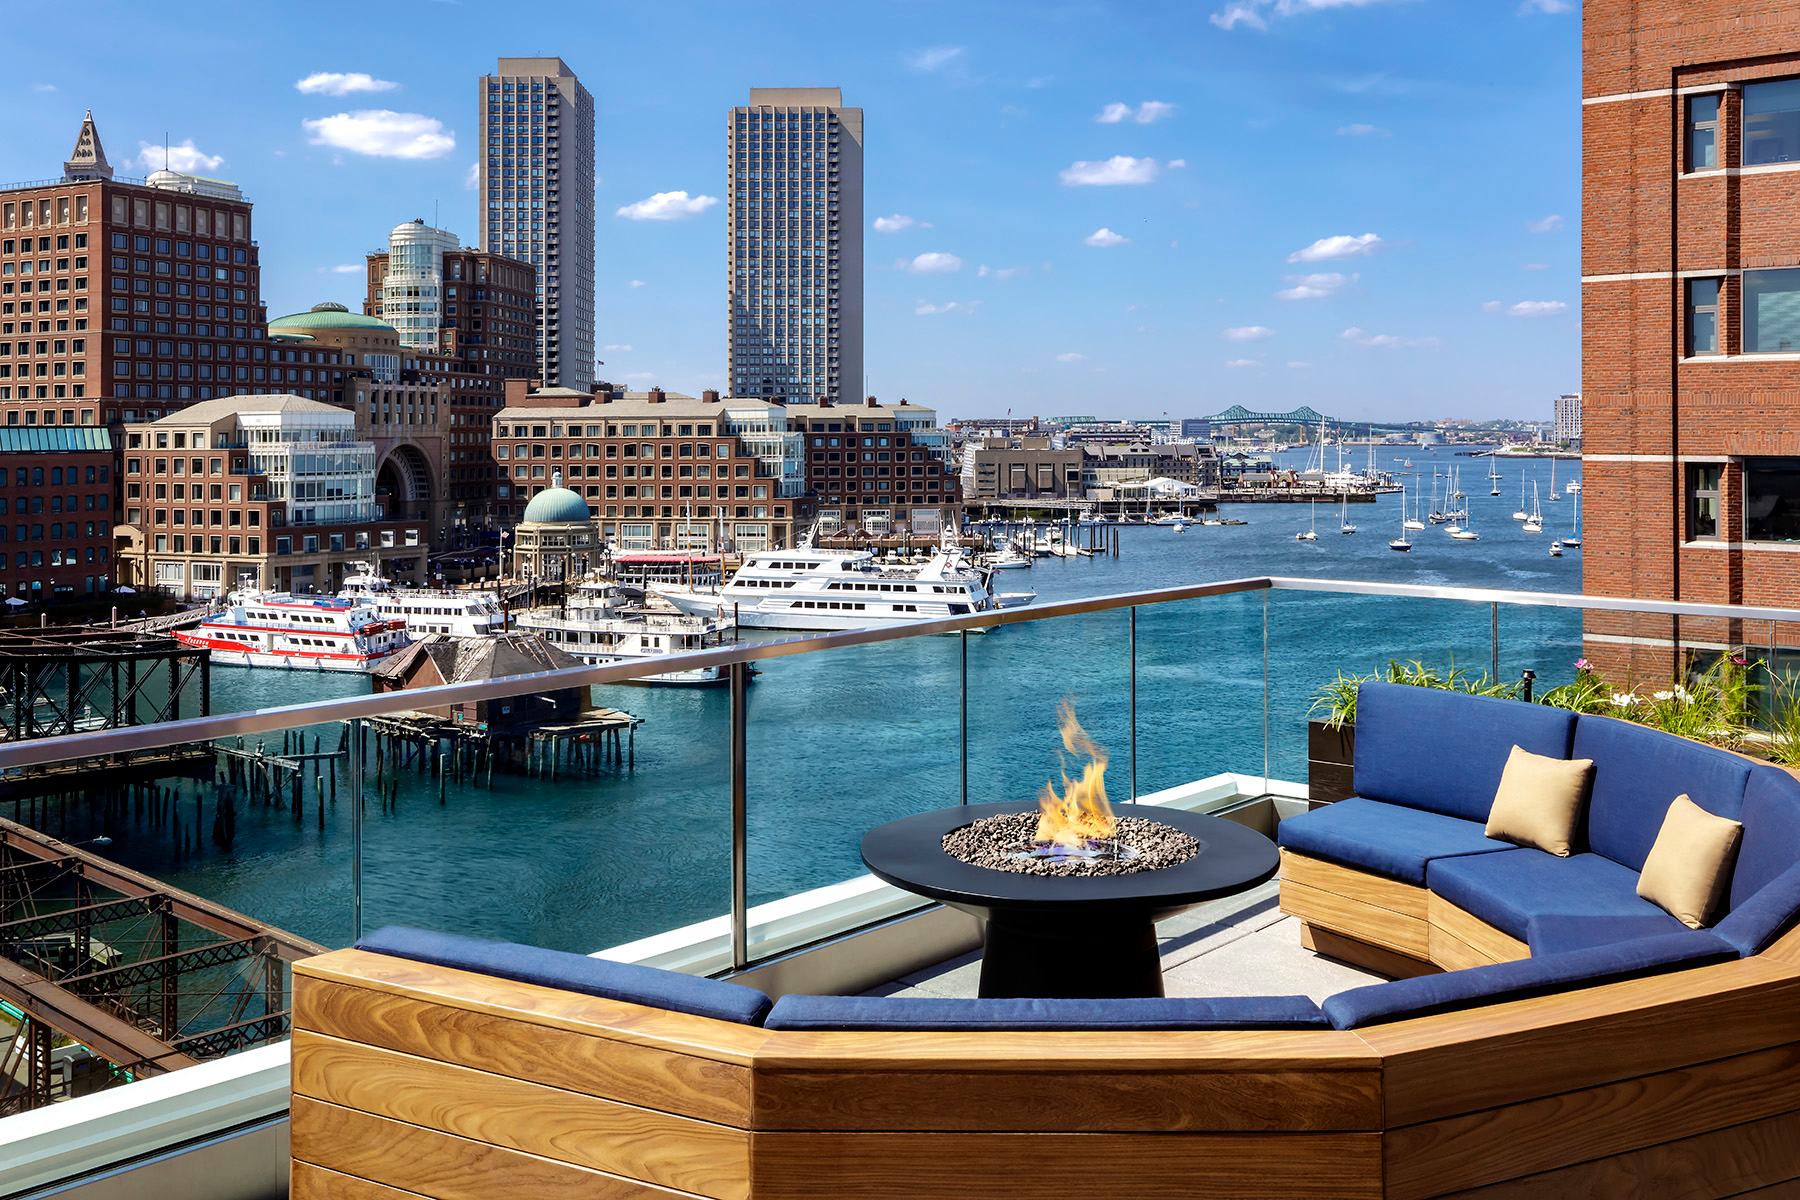 13 Best Rooftop Bars In Boston For Great Views And Breezes